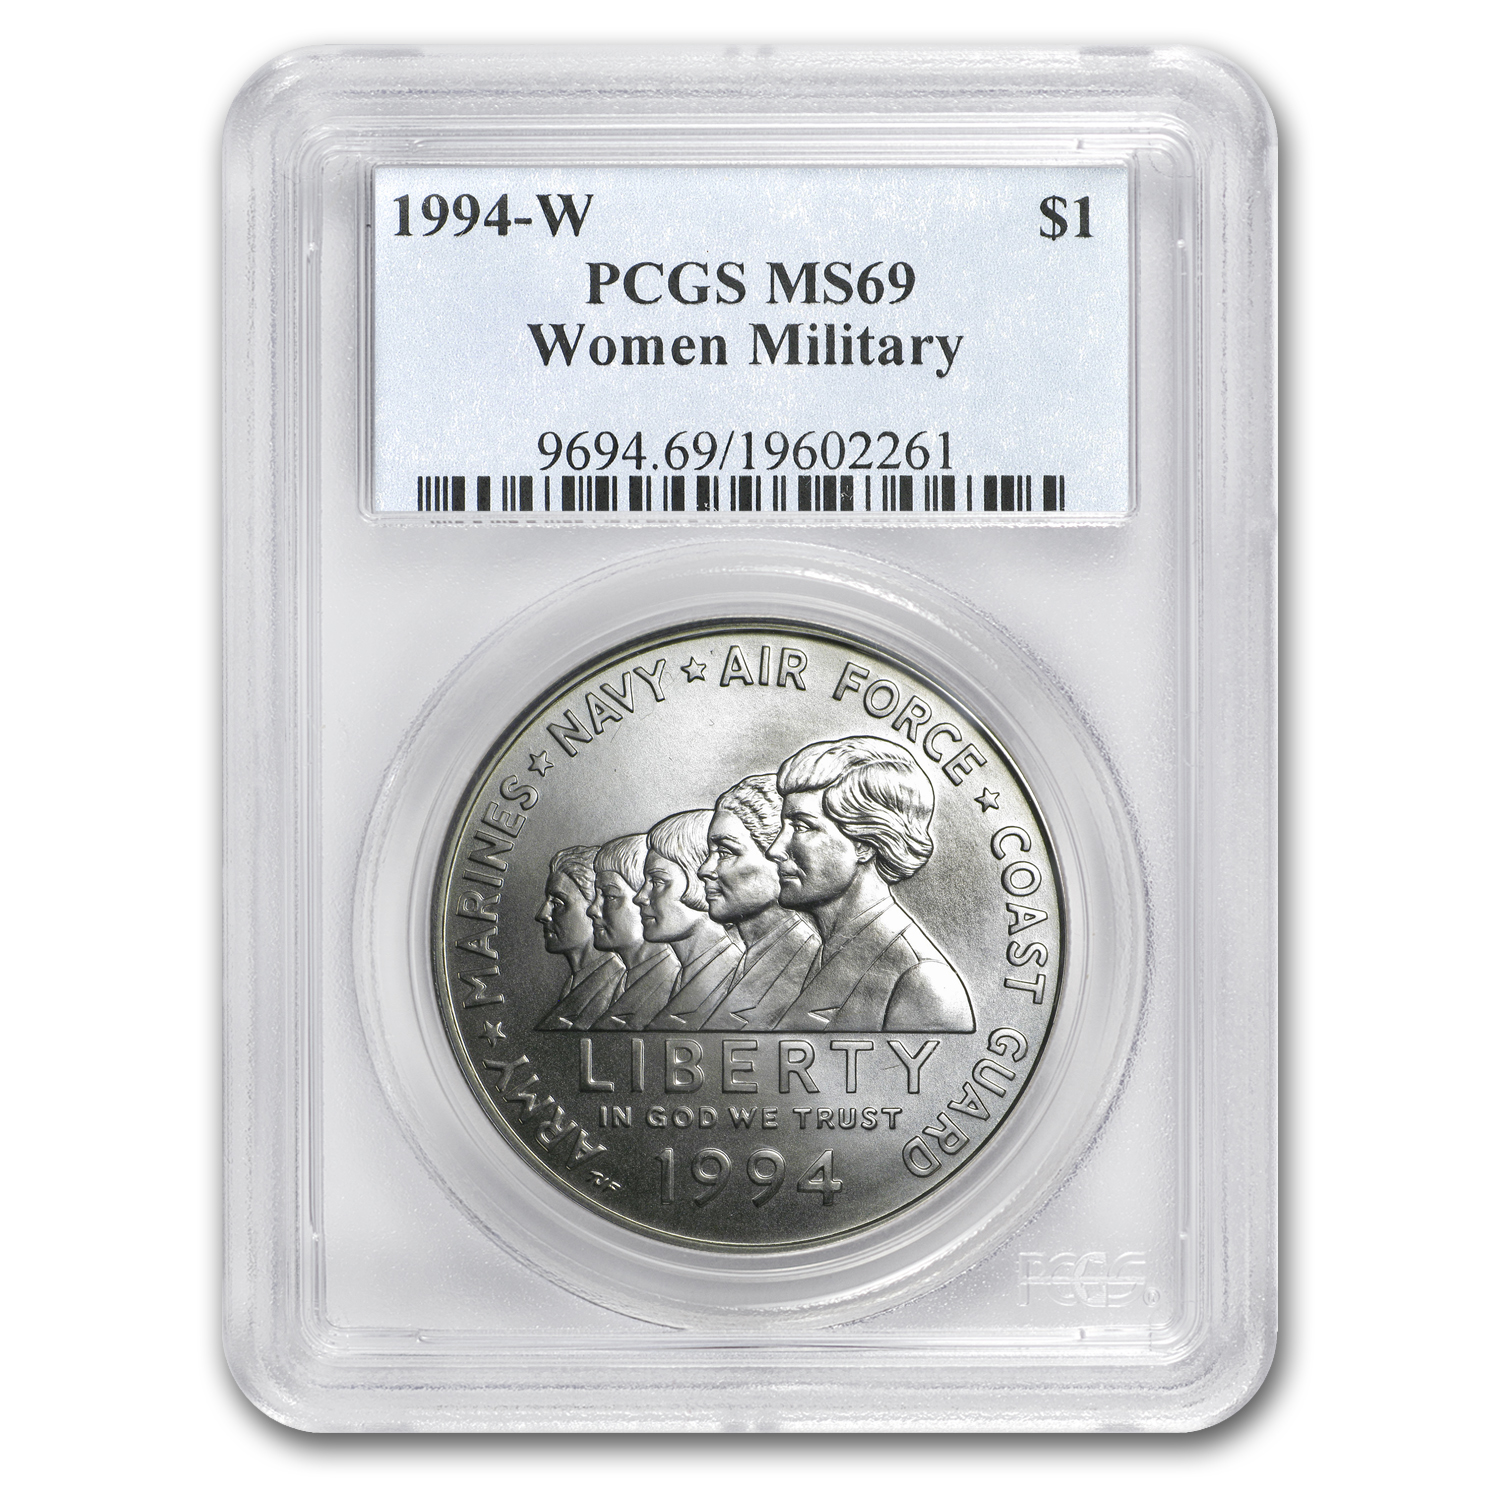 1994-W Women in Military $1 Silver Commemorative - MS-69 PCGS